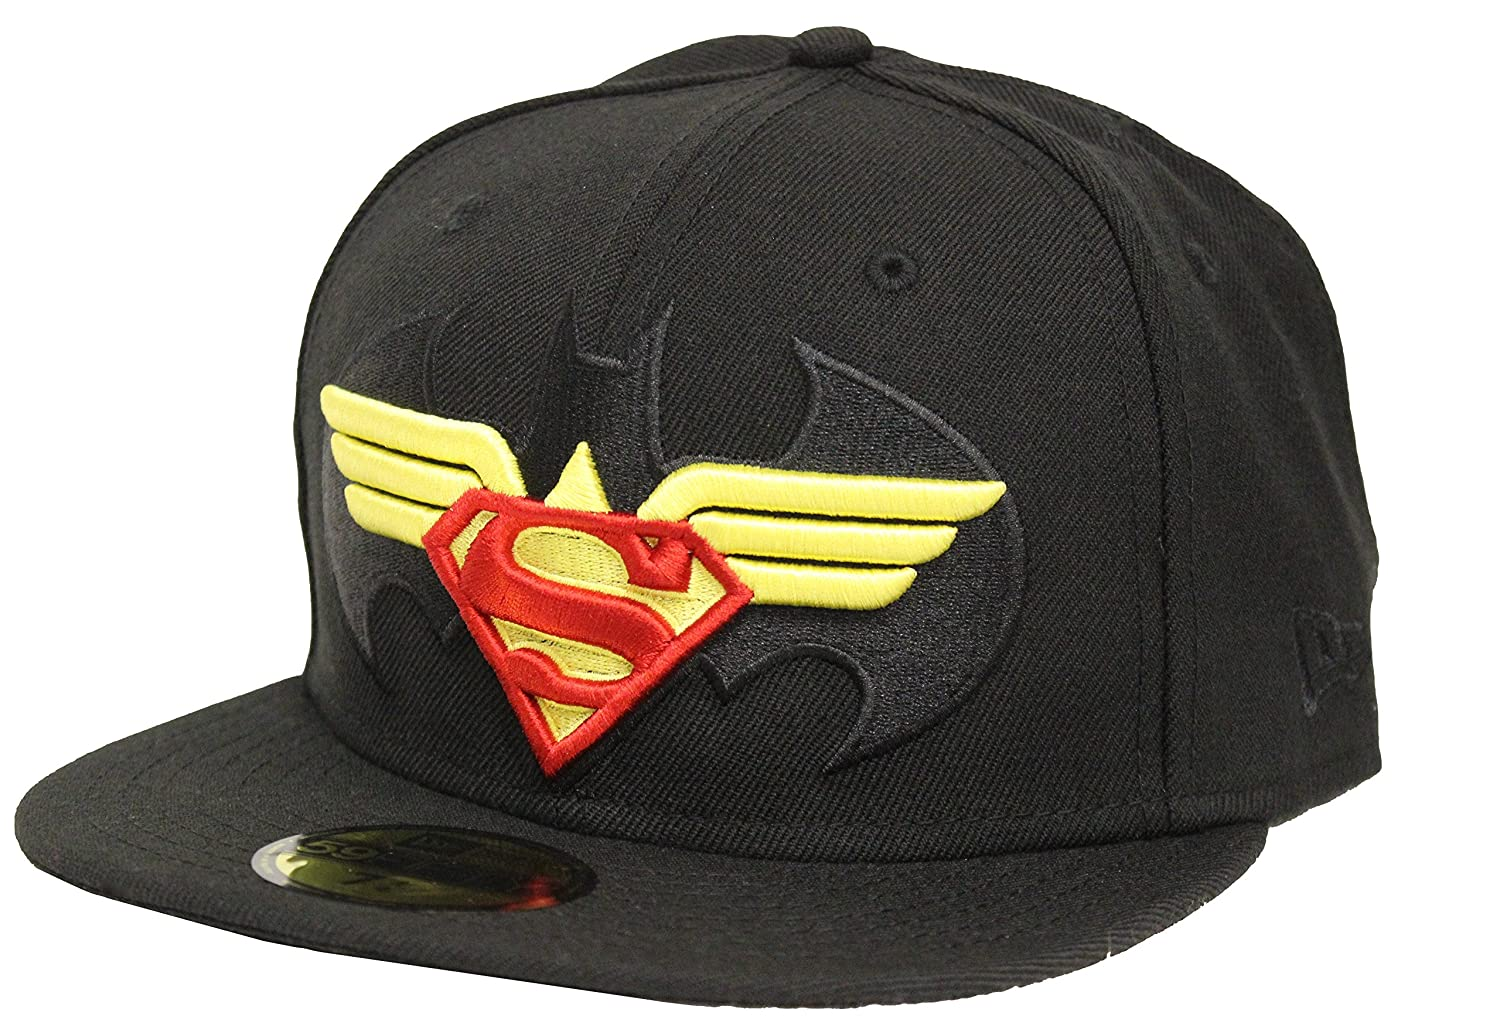 New Era 59Fifty Batman V Superman Dawn of Justice Trinity Logo Black Fitted  Hat (7 1 2) at Amazon Men s Clothing store  bc4c1016b07